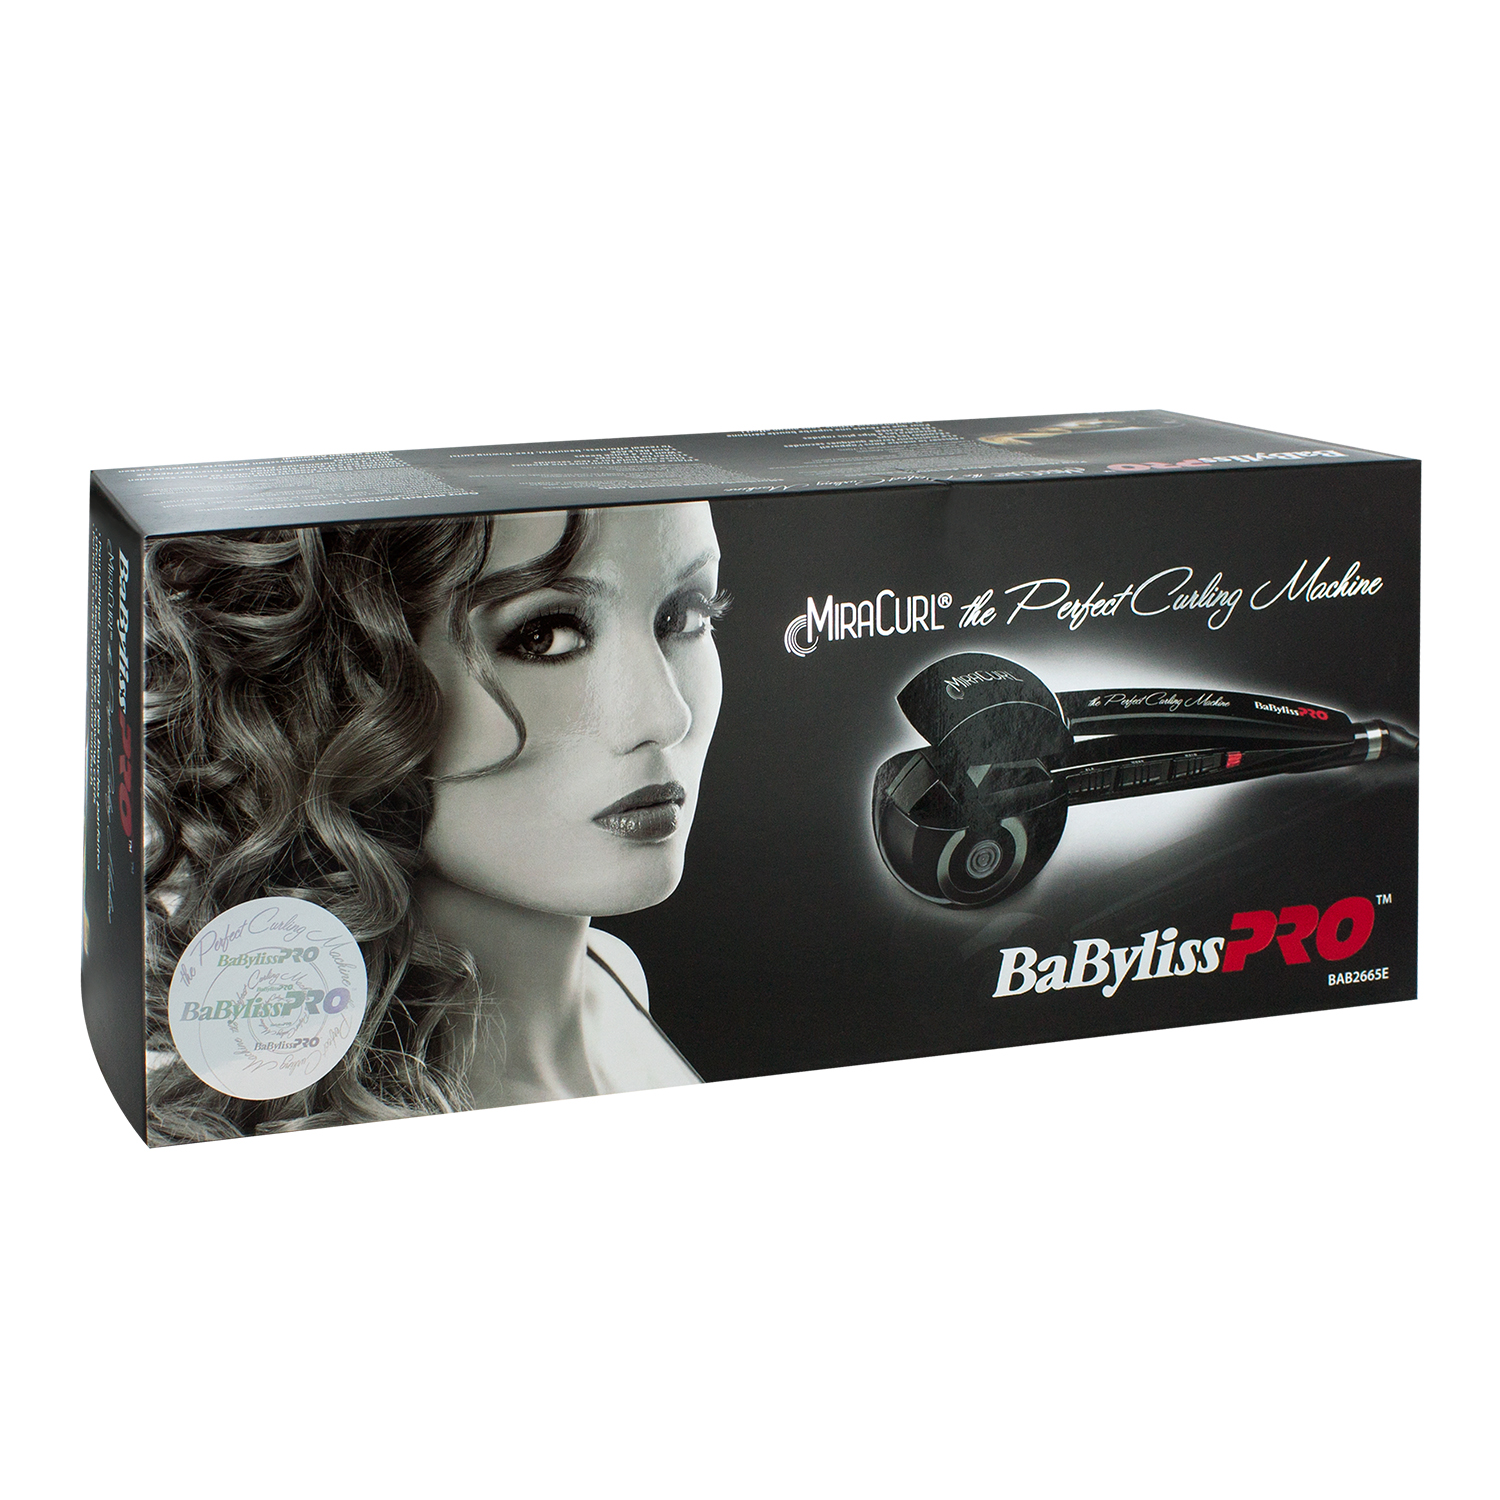 Babyliss Pro Miracurl Professional Hair Curler Curling